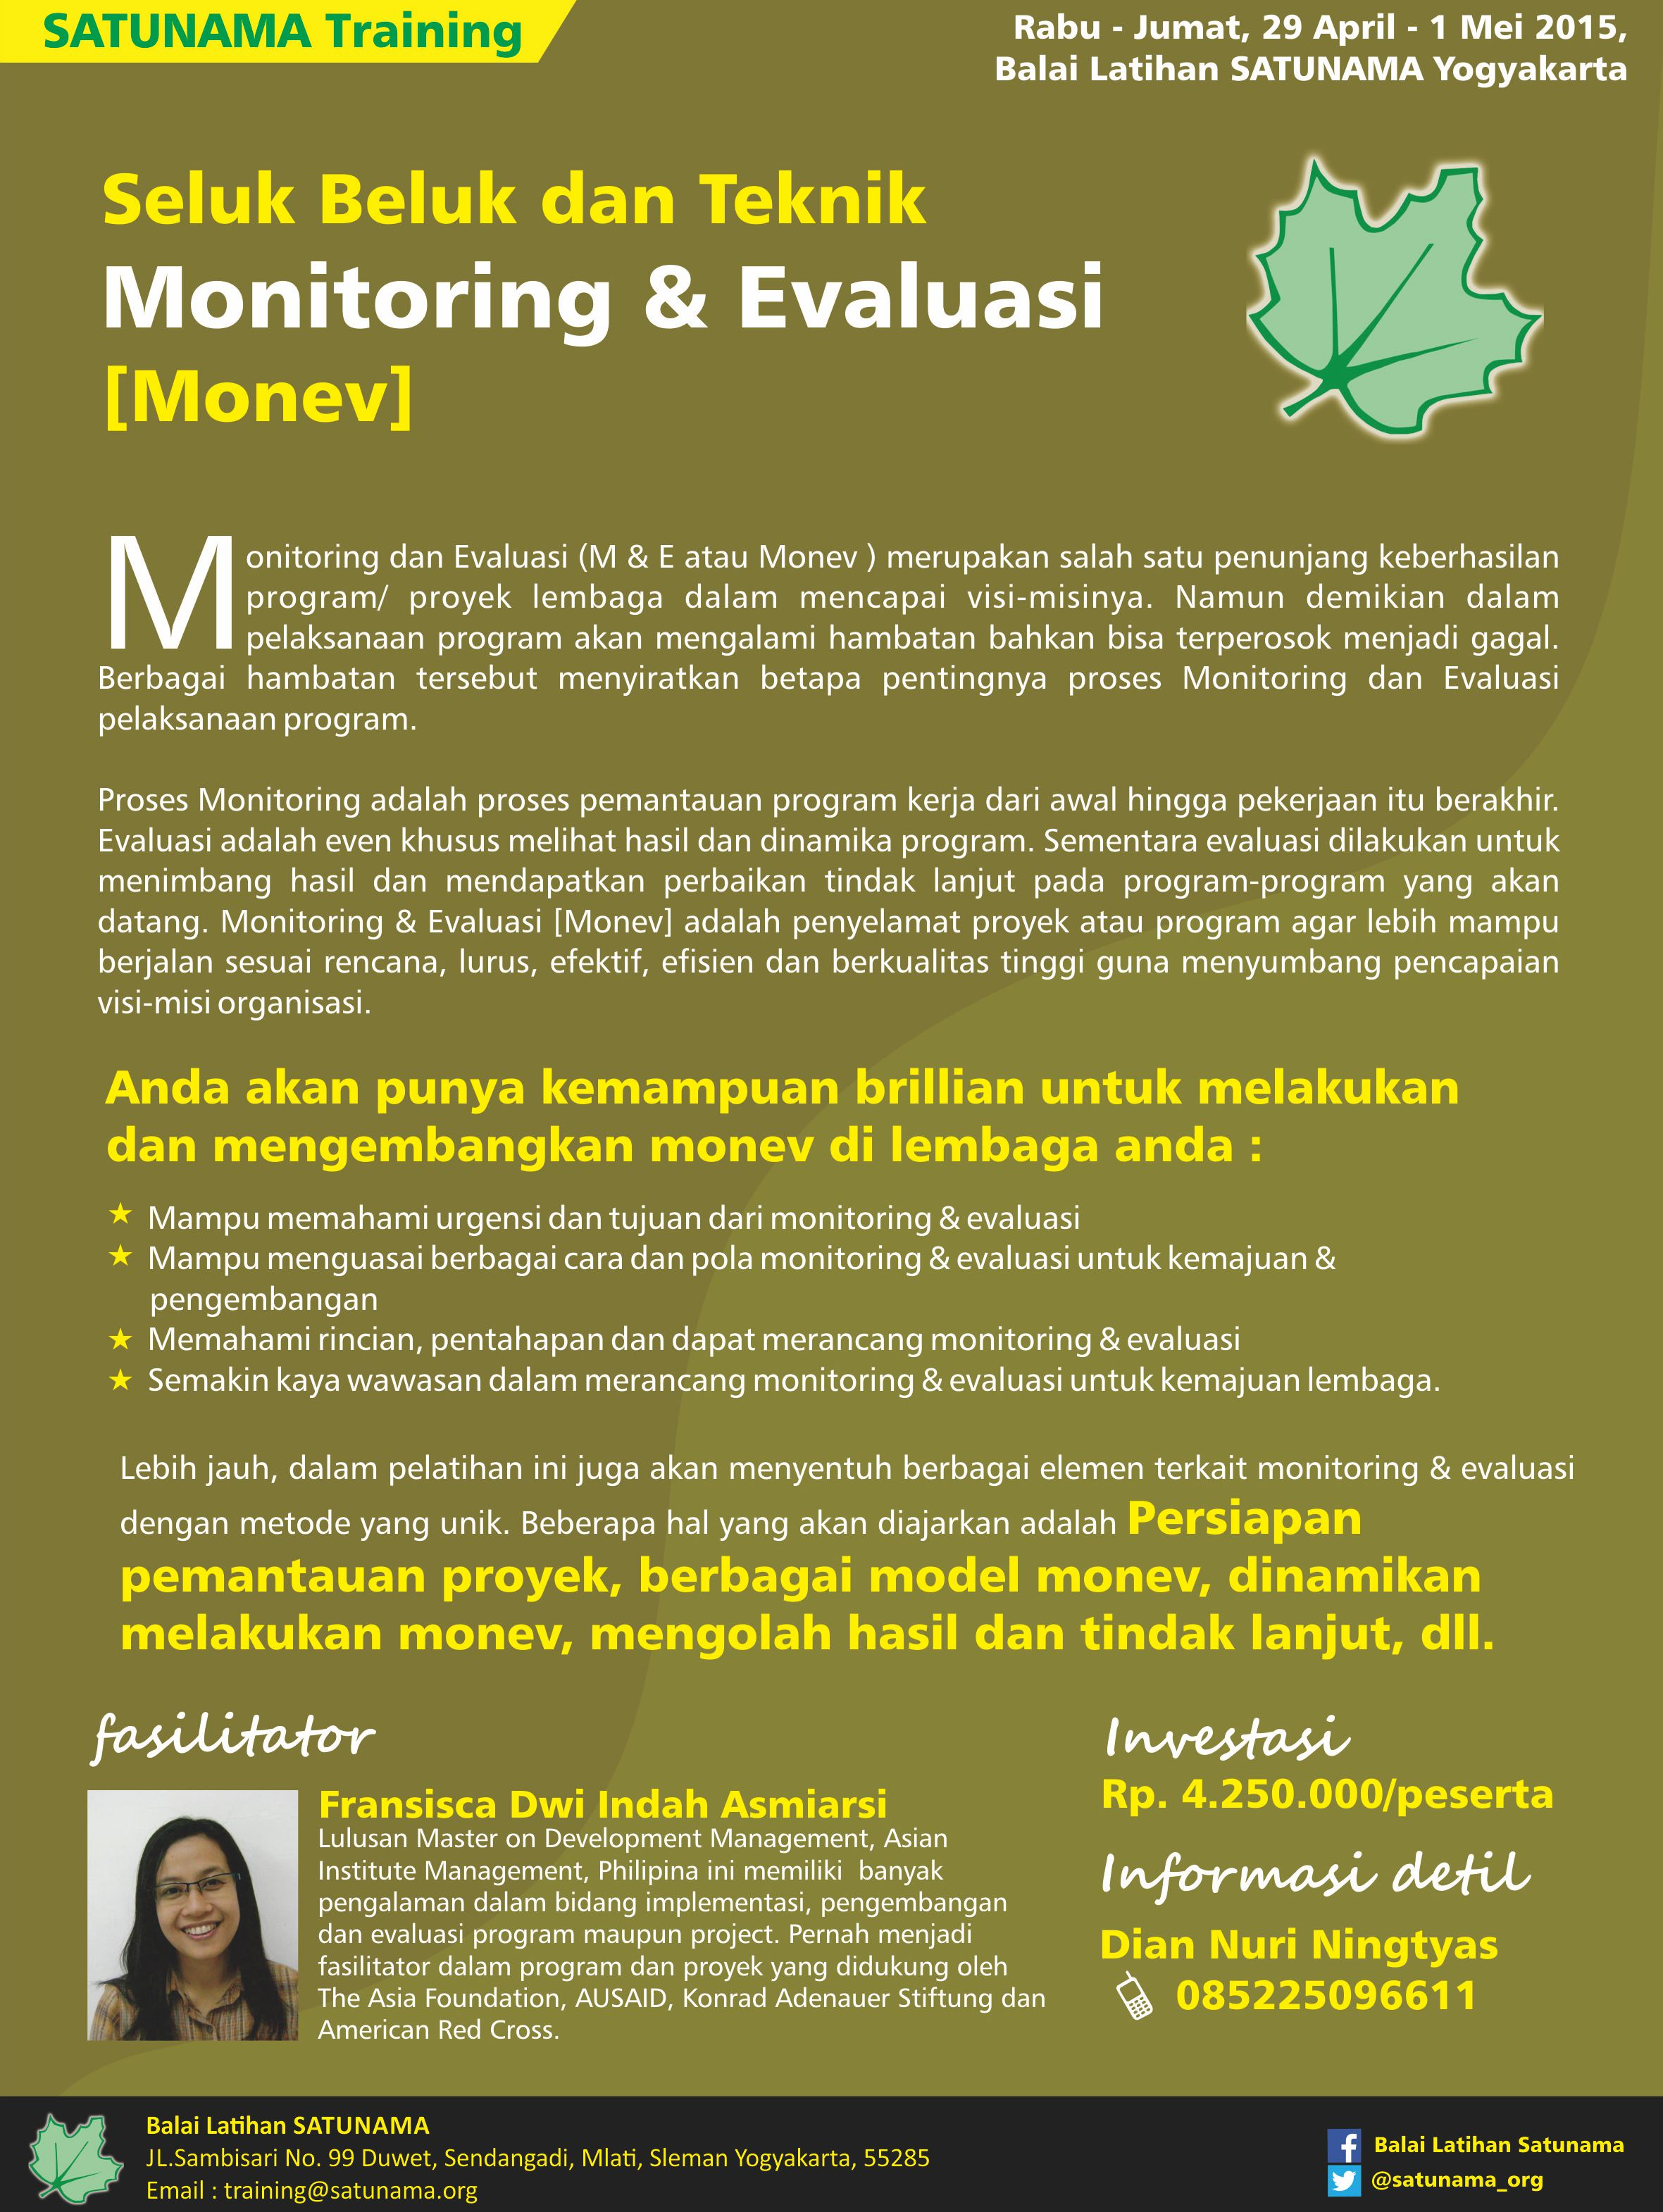 Pelatihan Monitoring And Evaluation Monev Yayasan Satunama